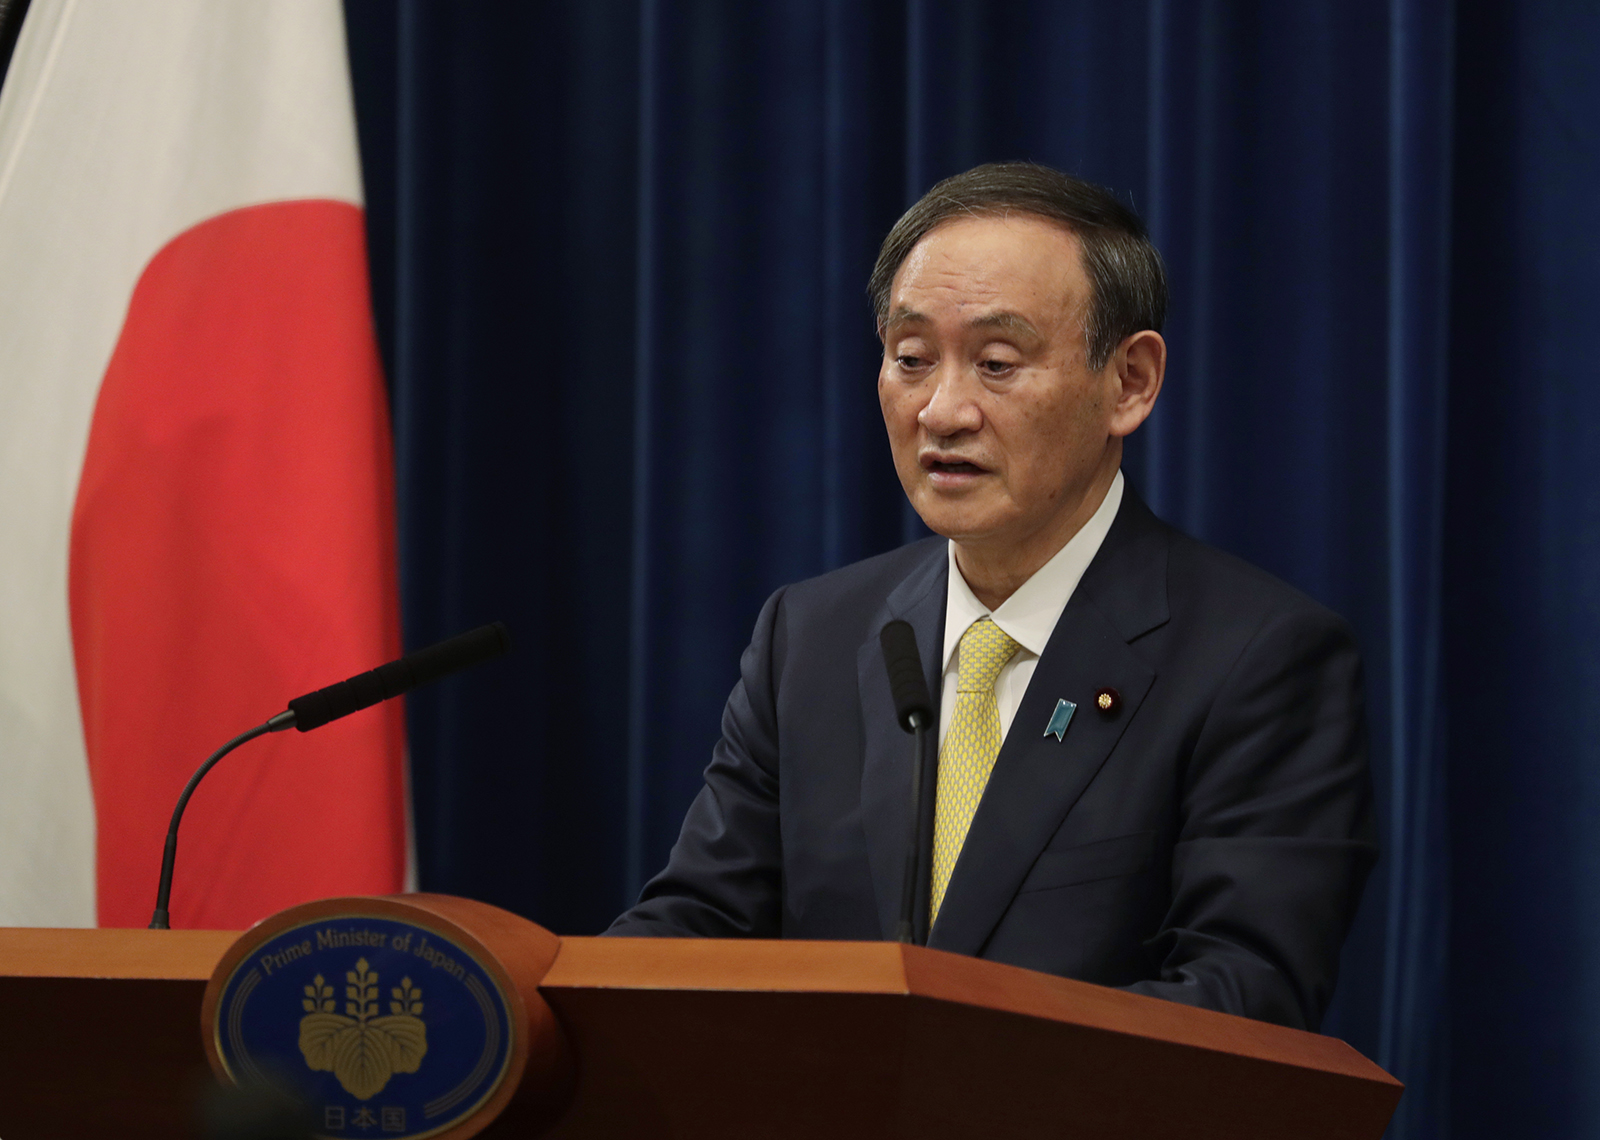 Yoshihide Suga, Japan's Prime Minister, speaks during a news conference in Tokyo on Friday, December 4.